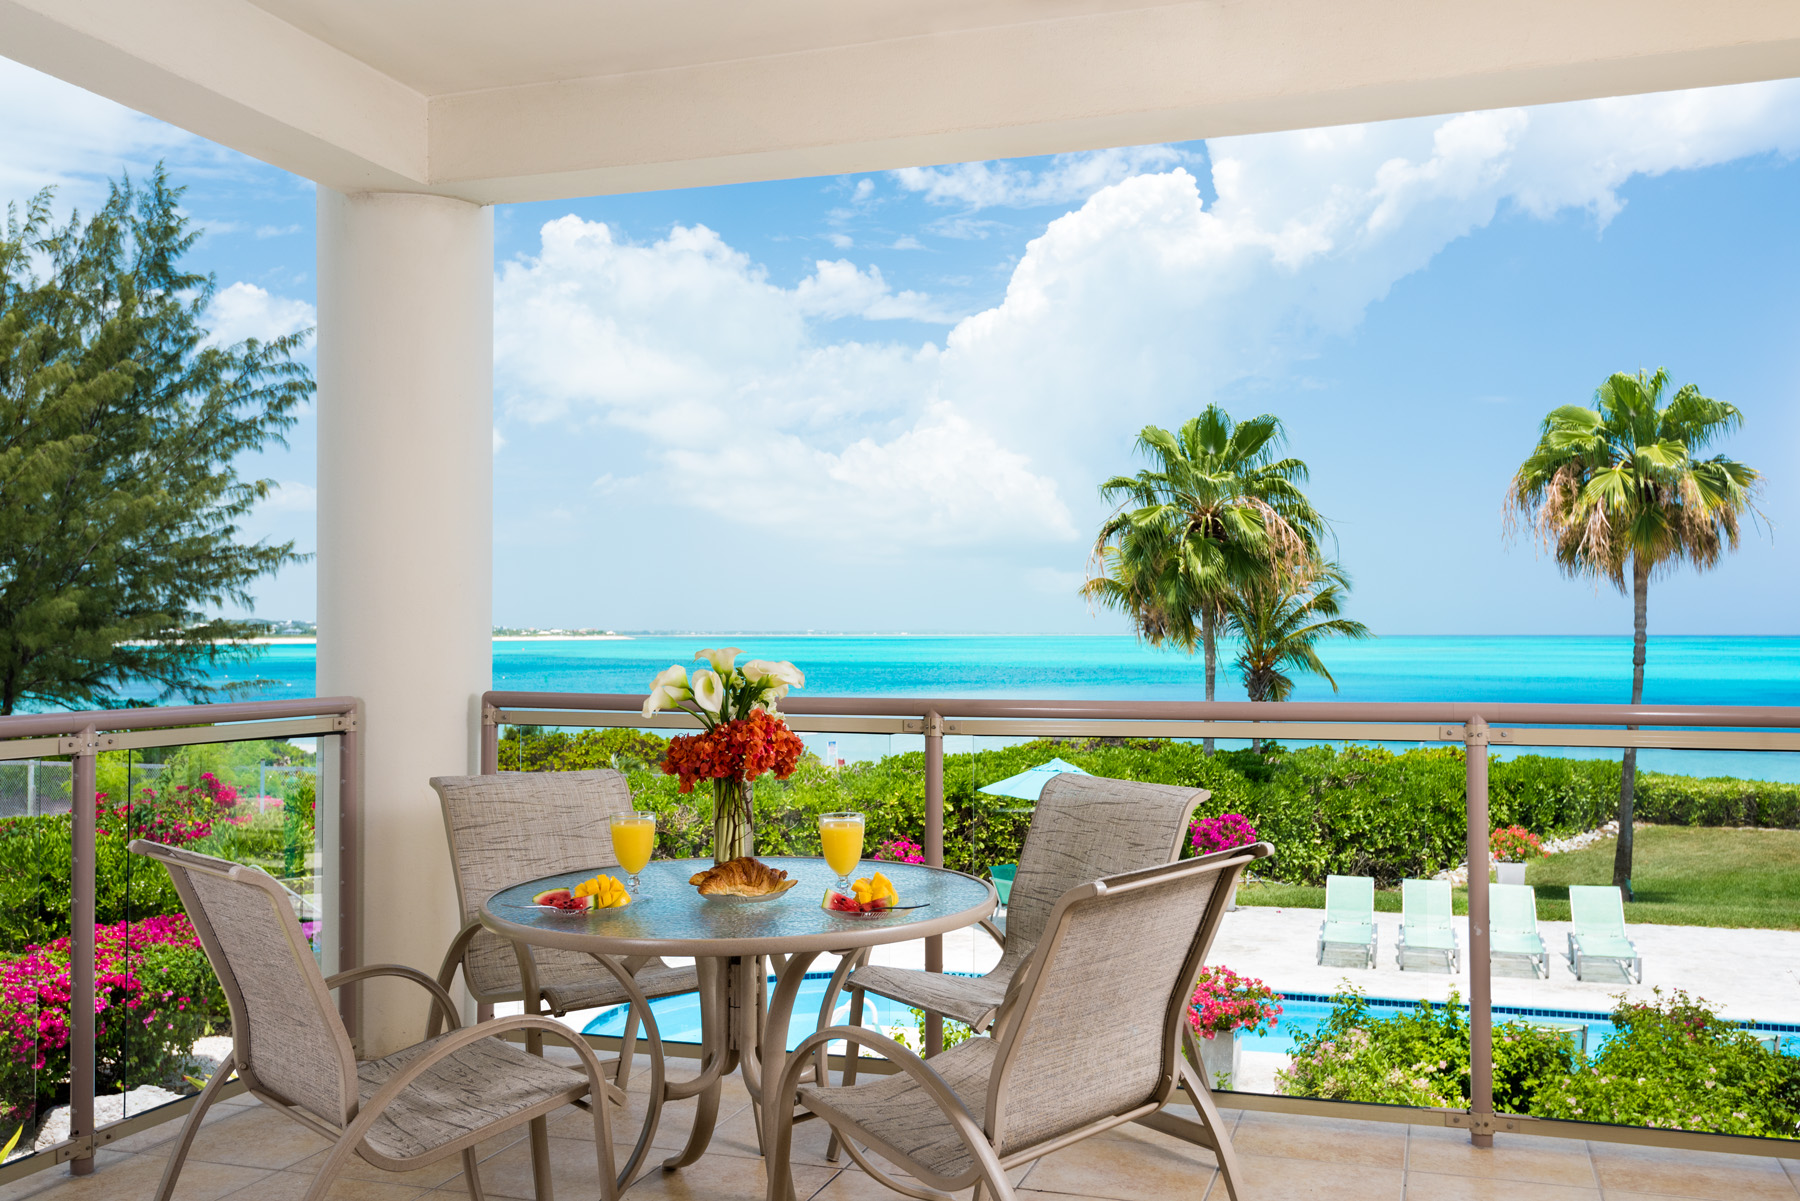 Condominium for Sale at Coral Gardens - Suite 4201 Beachfront Grace Bay, Providenciales, TC Turks And Caicos Islands